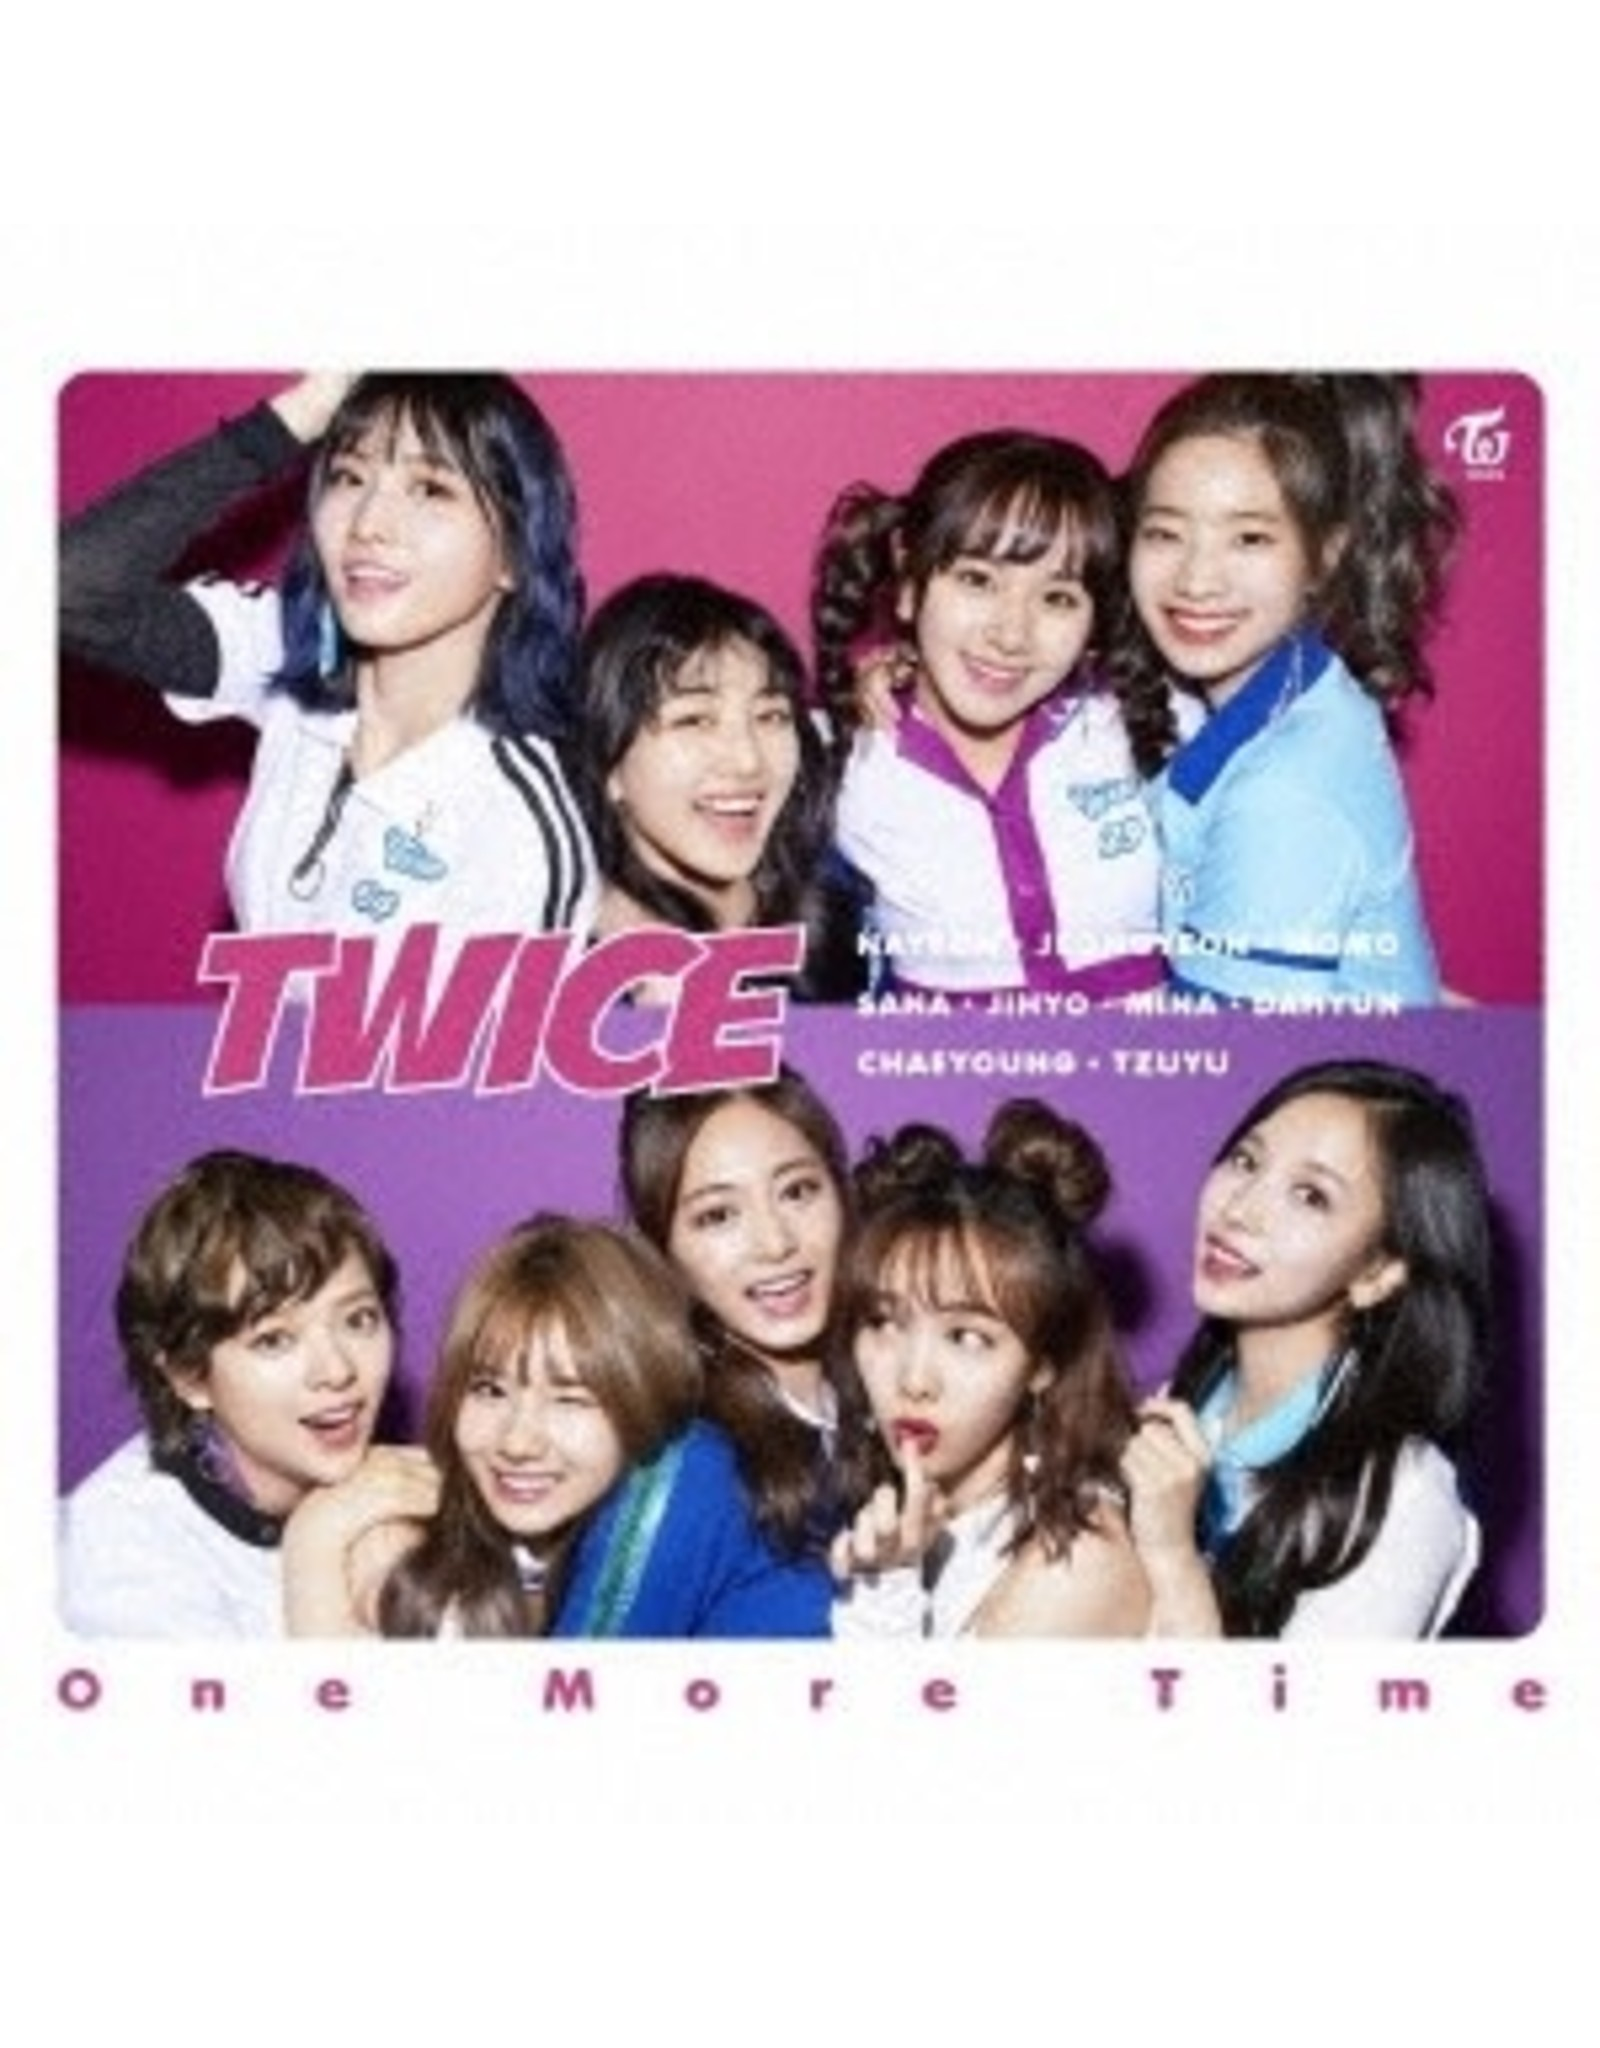 WP [CD]ONE MORE TIME   [LIMITED-B/CD+DVD/SLEEVE CASE/TRADING CARD ]